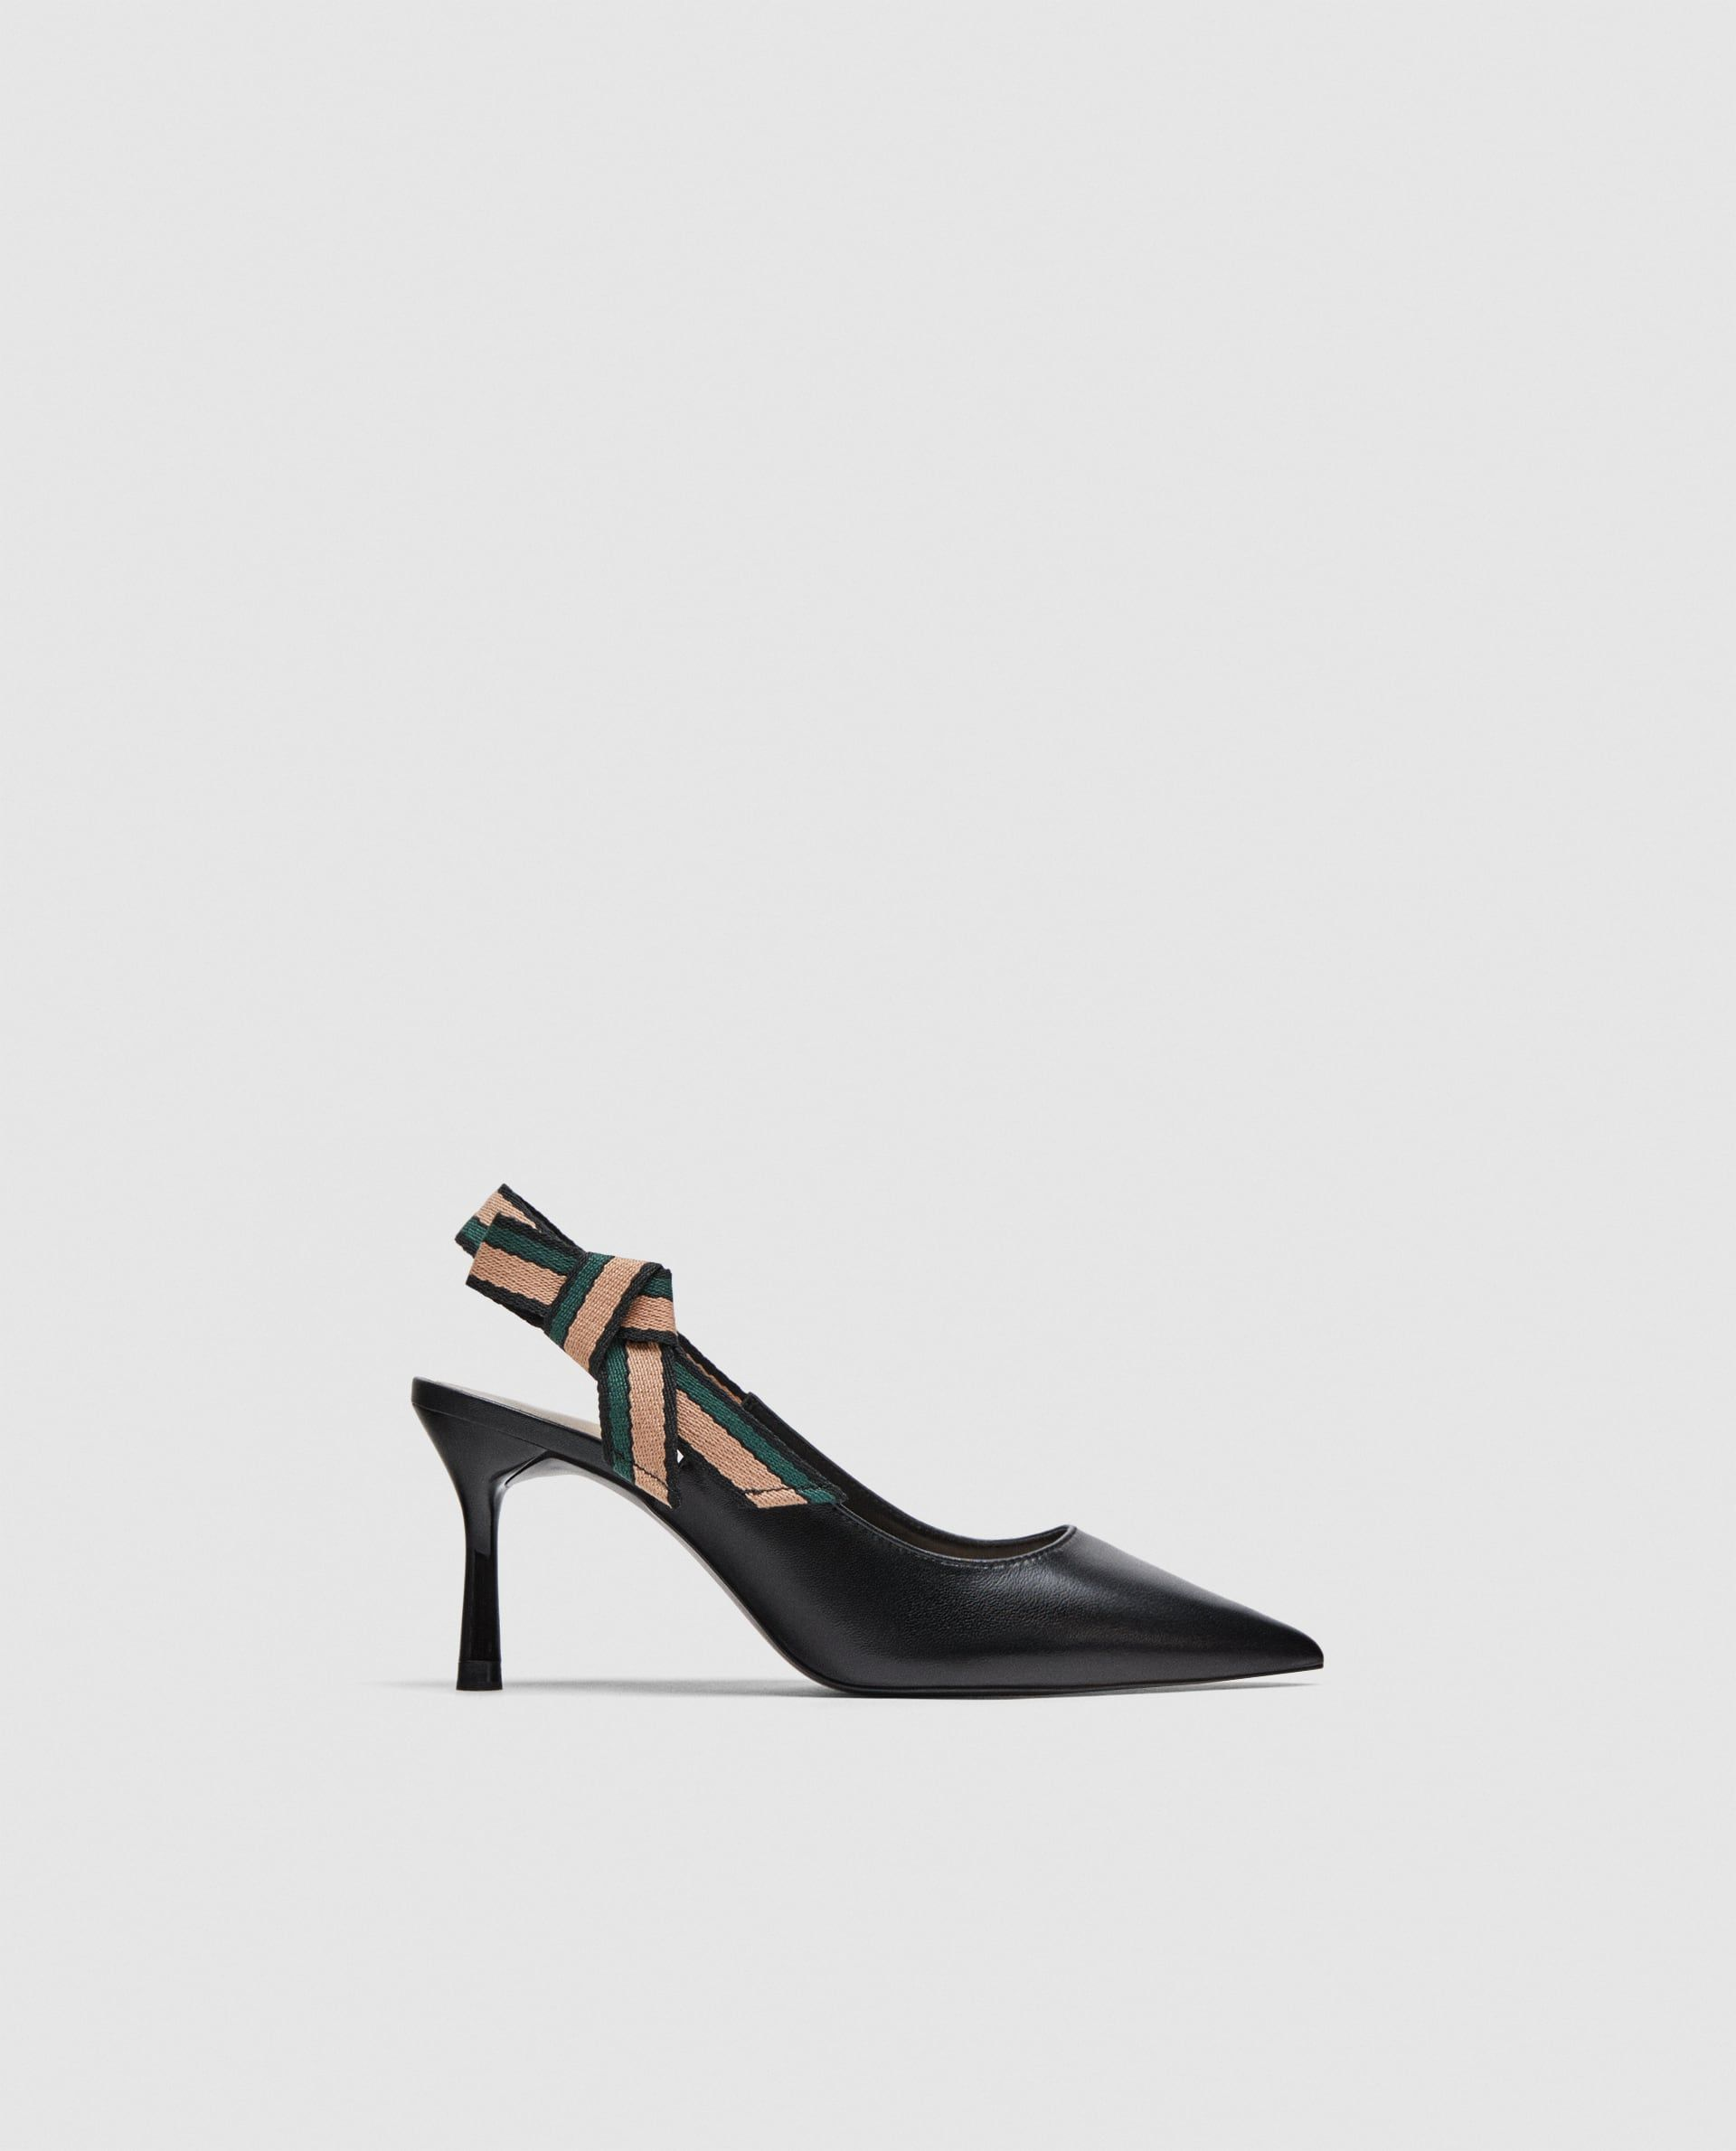 Leather Slingback Shoes With Ribbon Detail From Zara Slingback Shoes Women Shoes Slingback